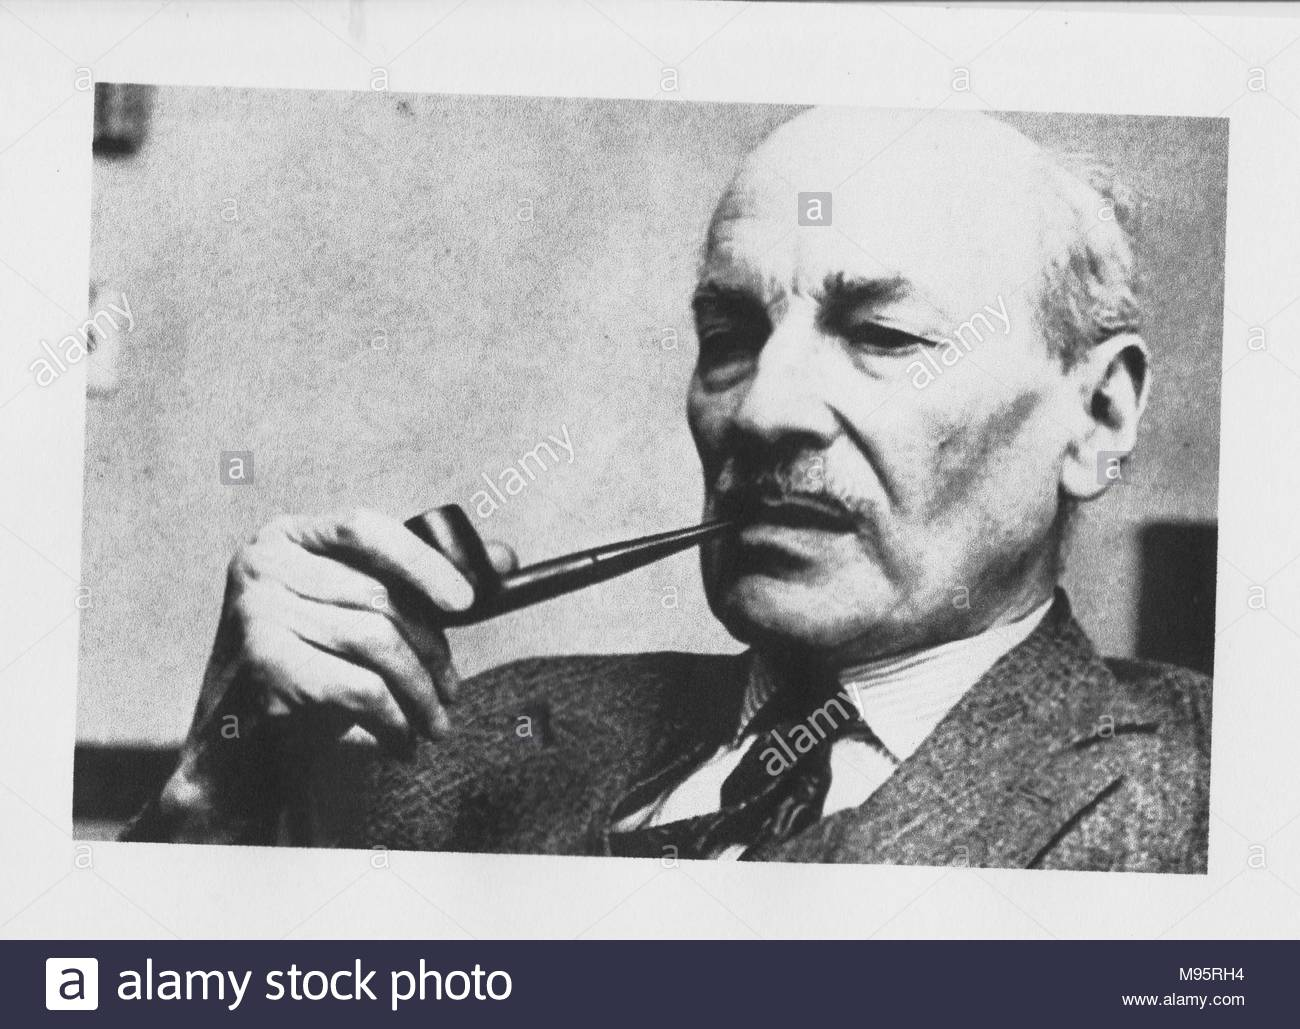 Clement Attlee (January 2, 1883 - October 8, 1967), British Prime Minister 1945-1951. Labour Party leader for 20 years, and presided over the 1945 - 1951 Labour government. This was the most significant reforming administration of 20th century Britain. It introduced the National Health Service, nationalized one fifth of the British economy, and granted independence to India. - Stock Image